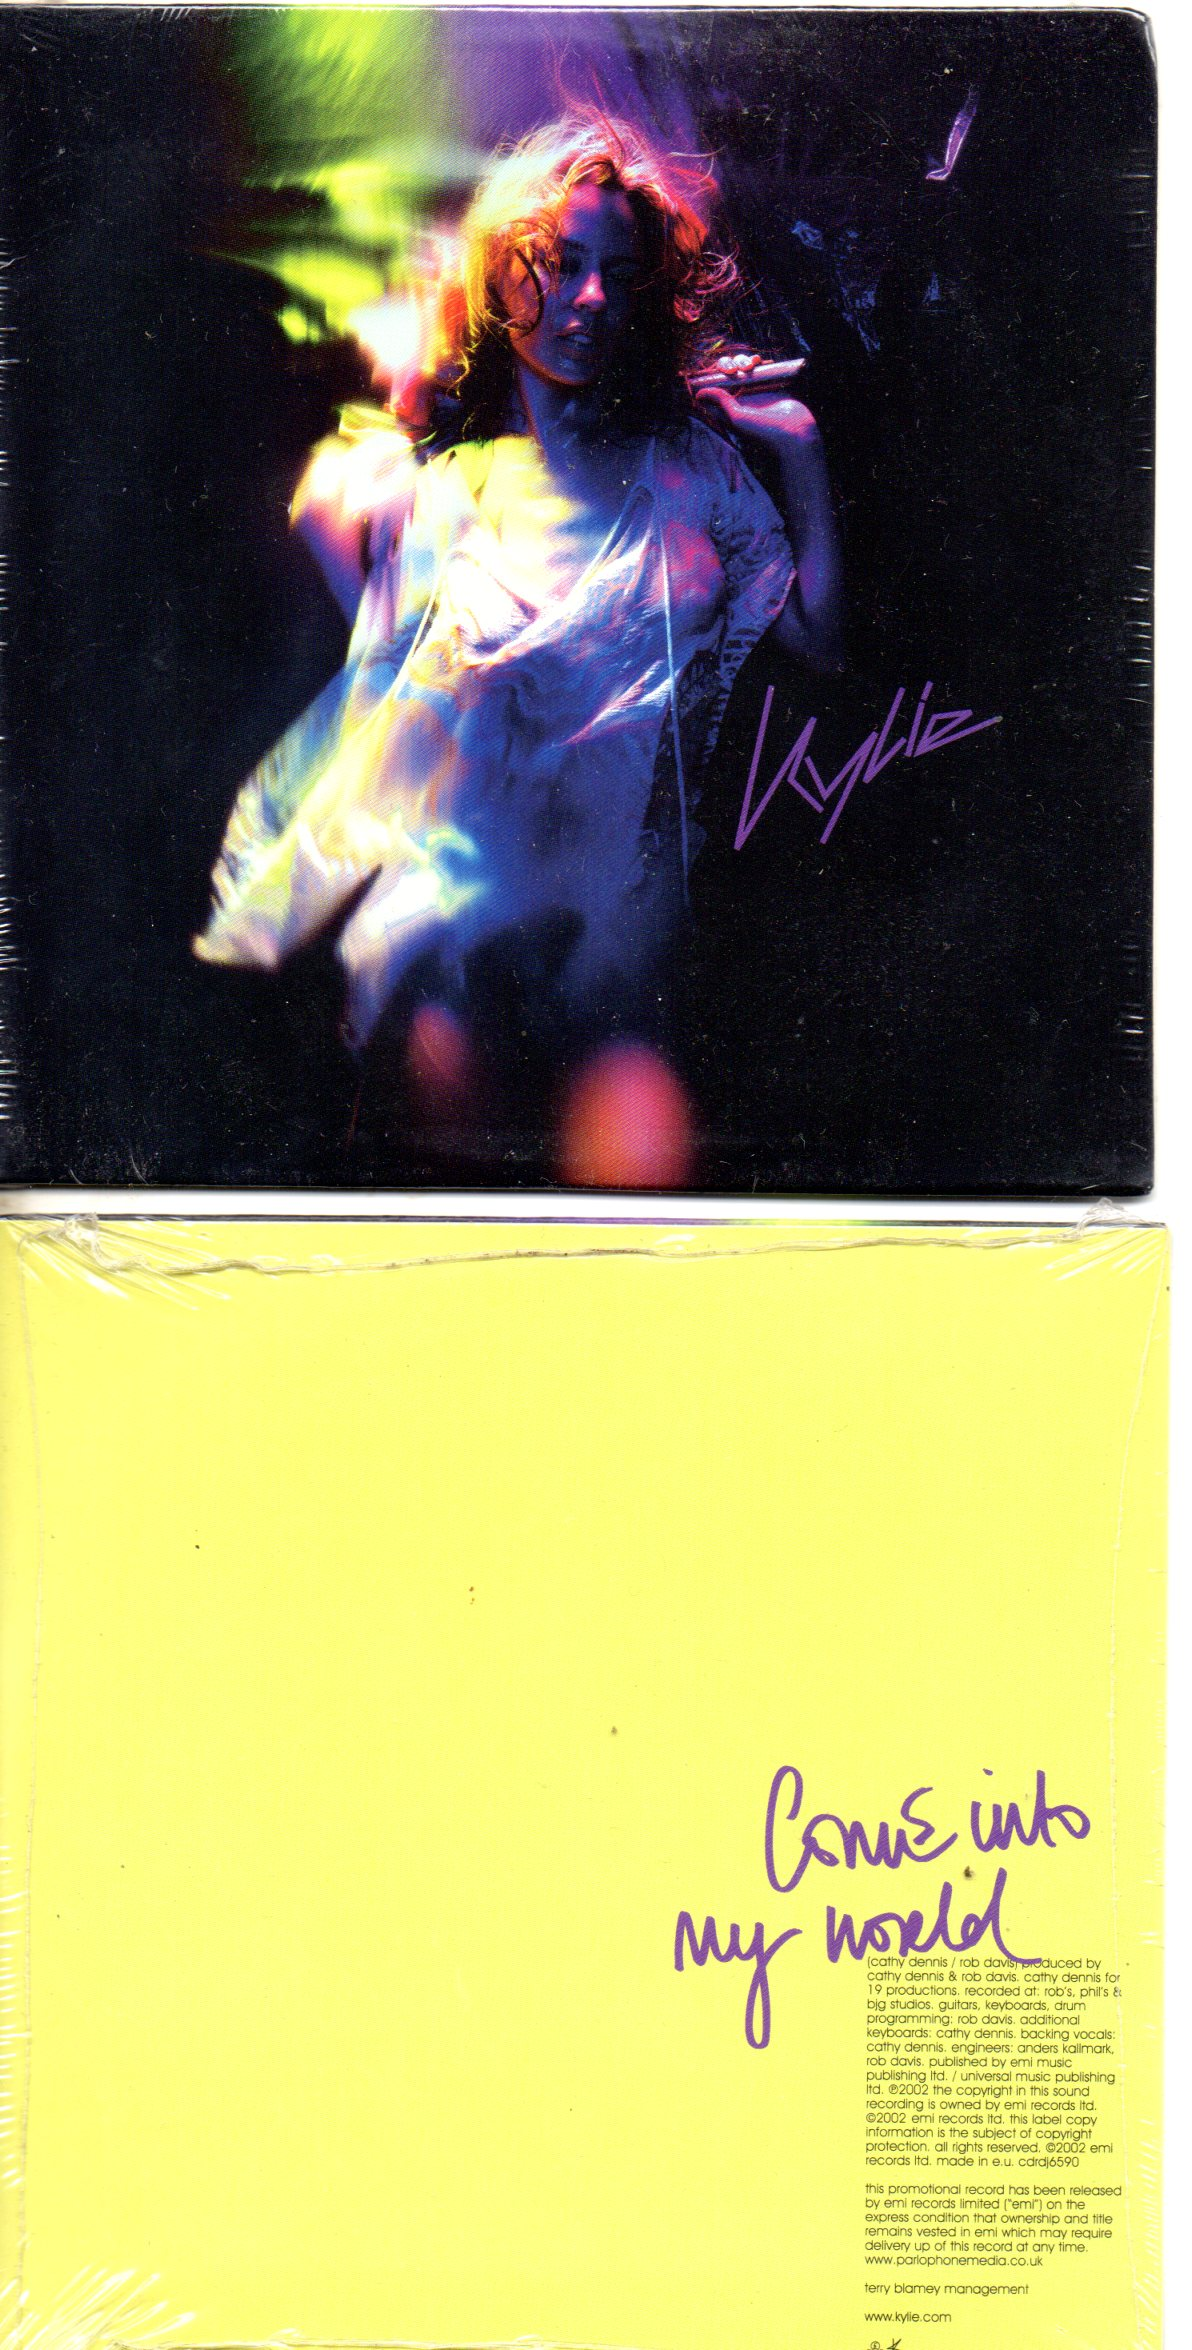 Come Into My World Promo 1 Track Card Sleeve - Kylie MINOGUE